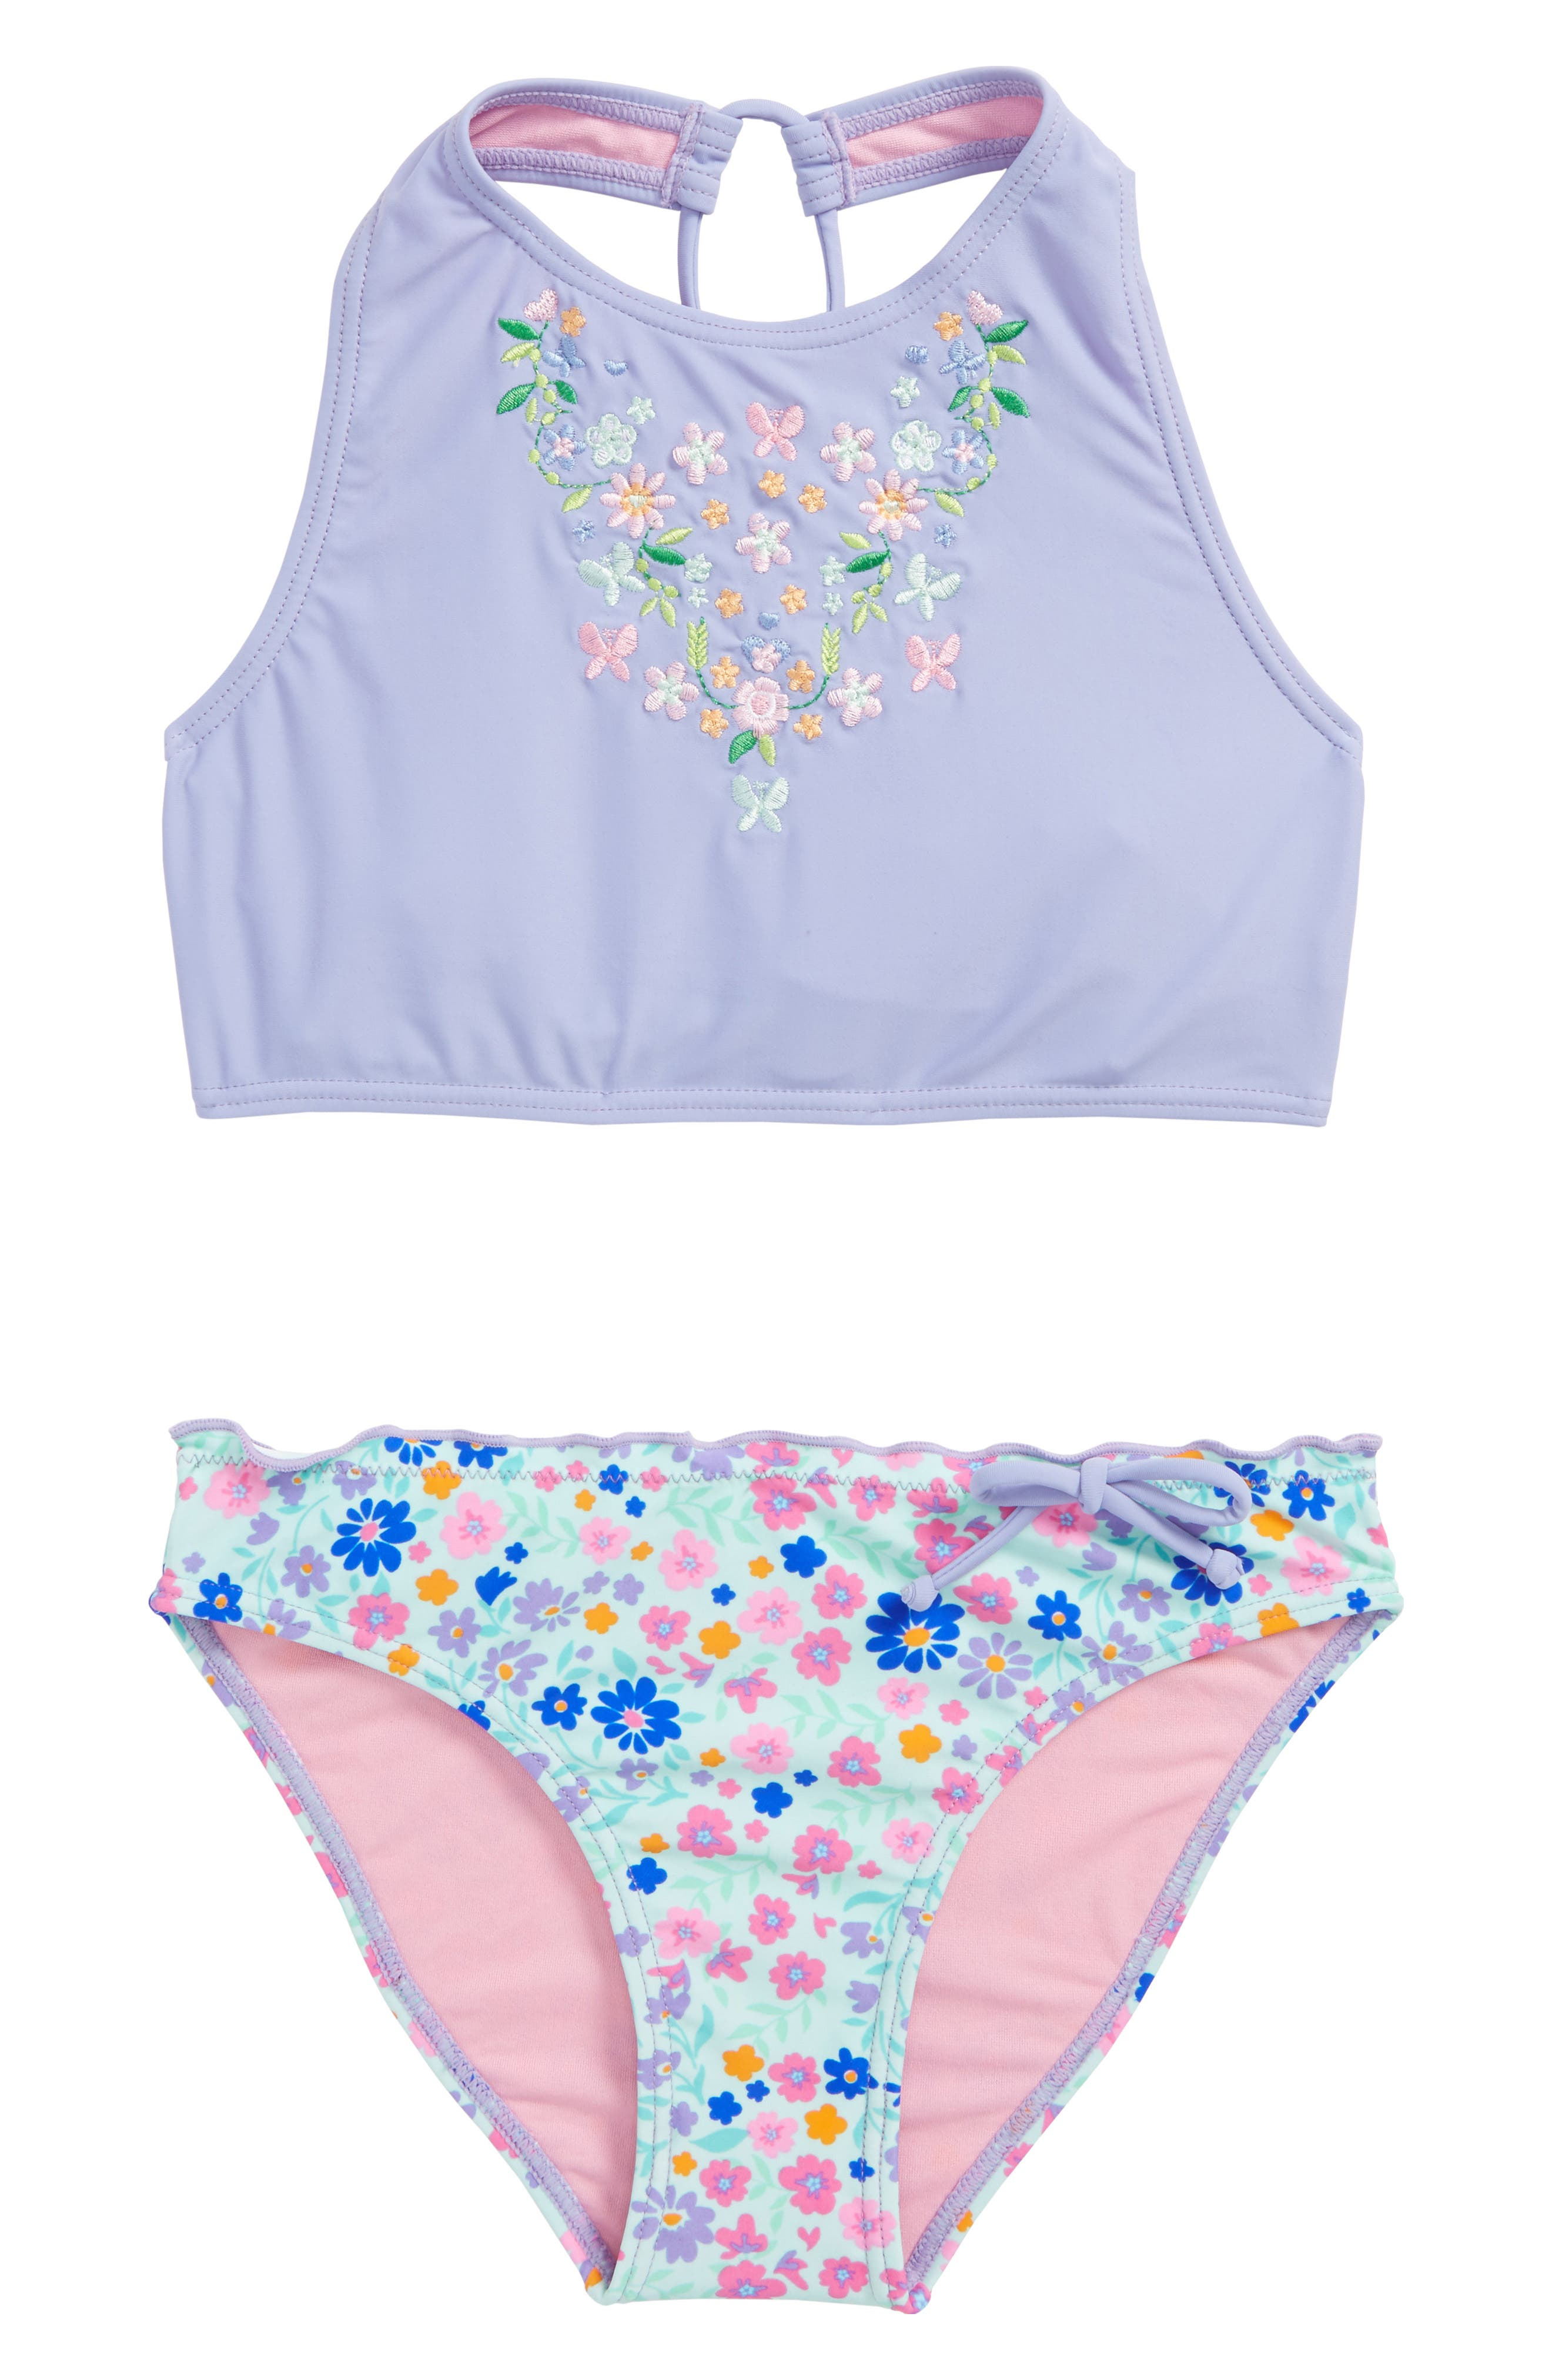 In Bloom Two-Piece Swimsuit,                             Main thumbnail 1, color,                             400